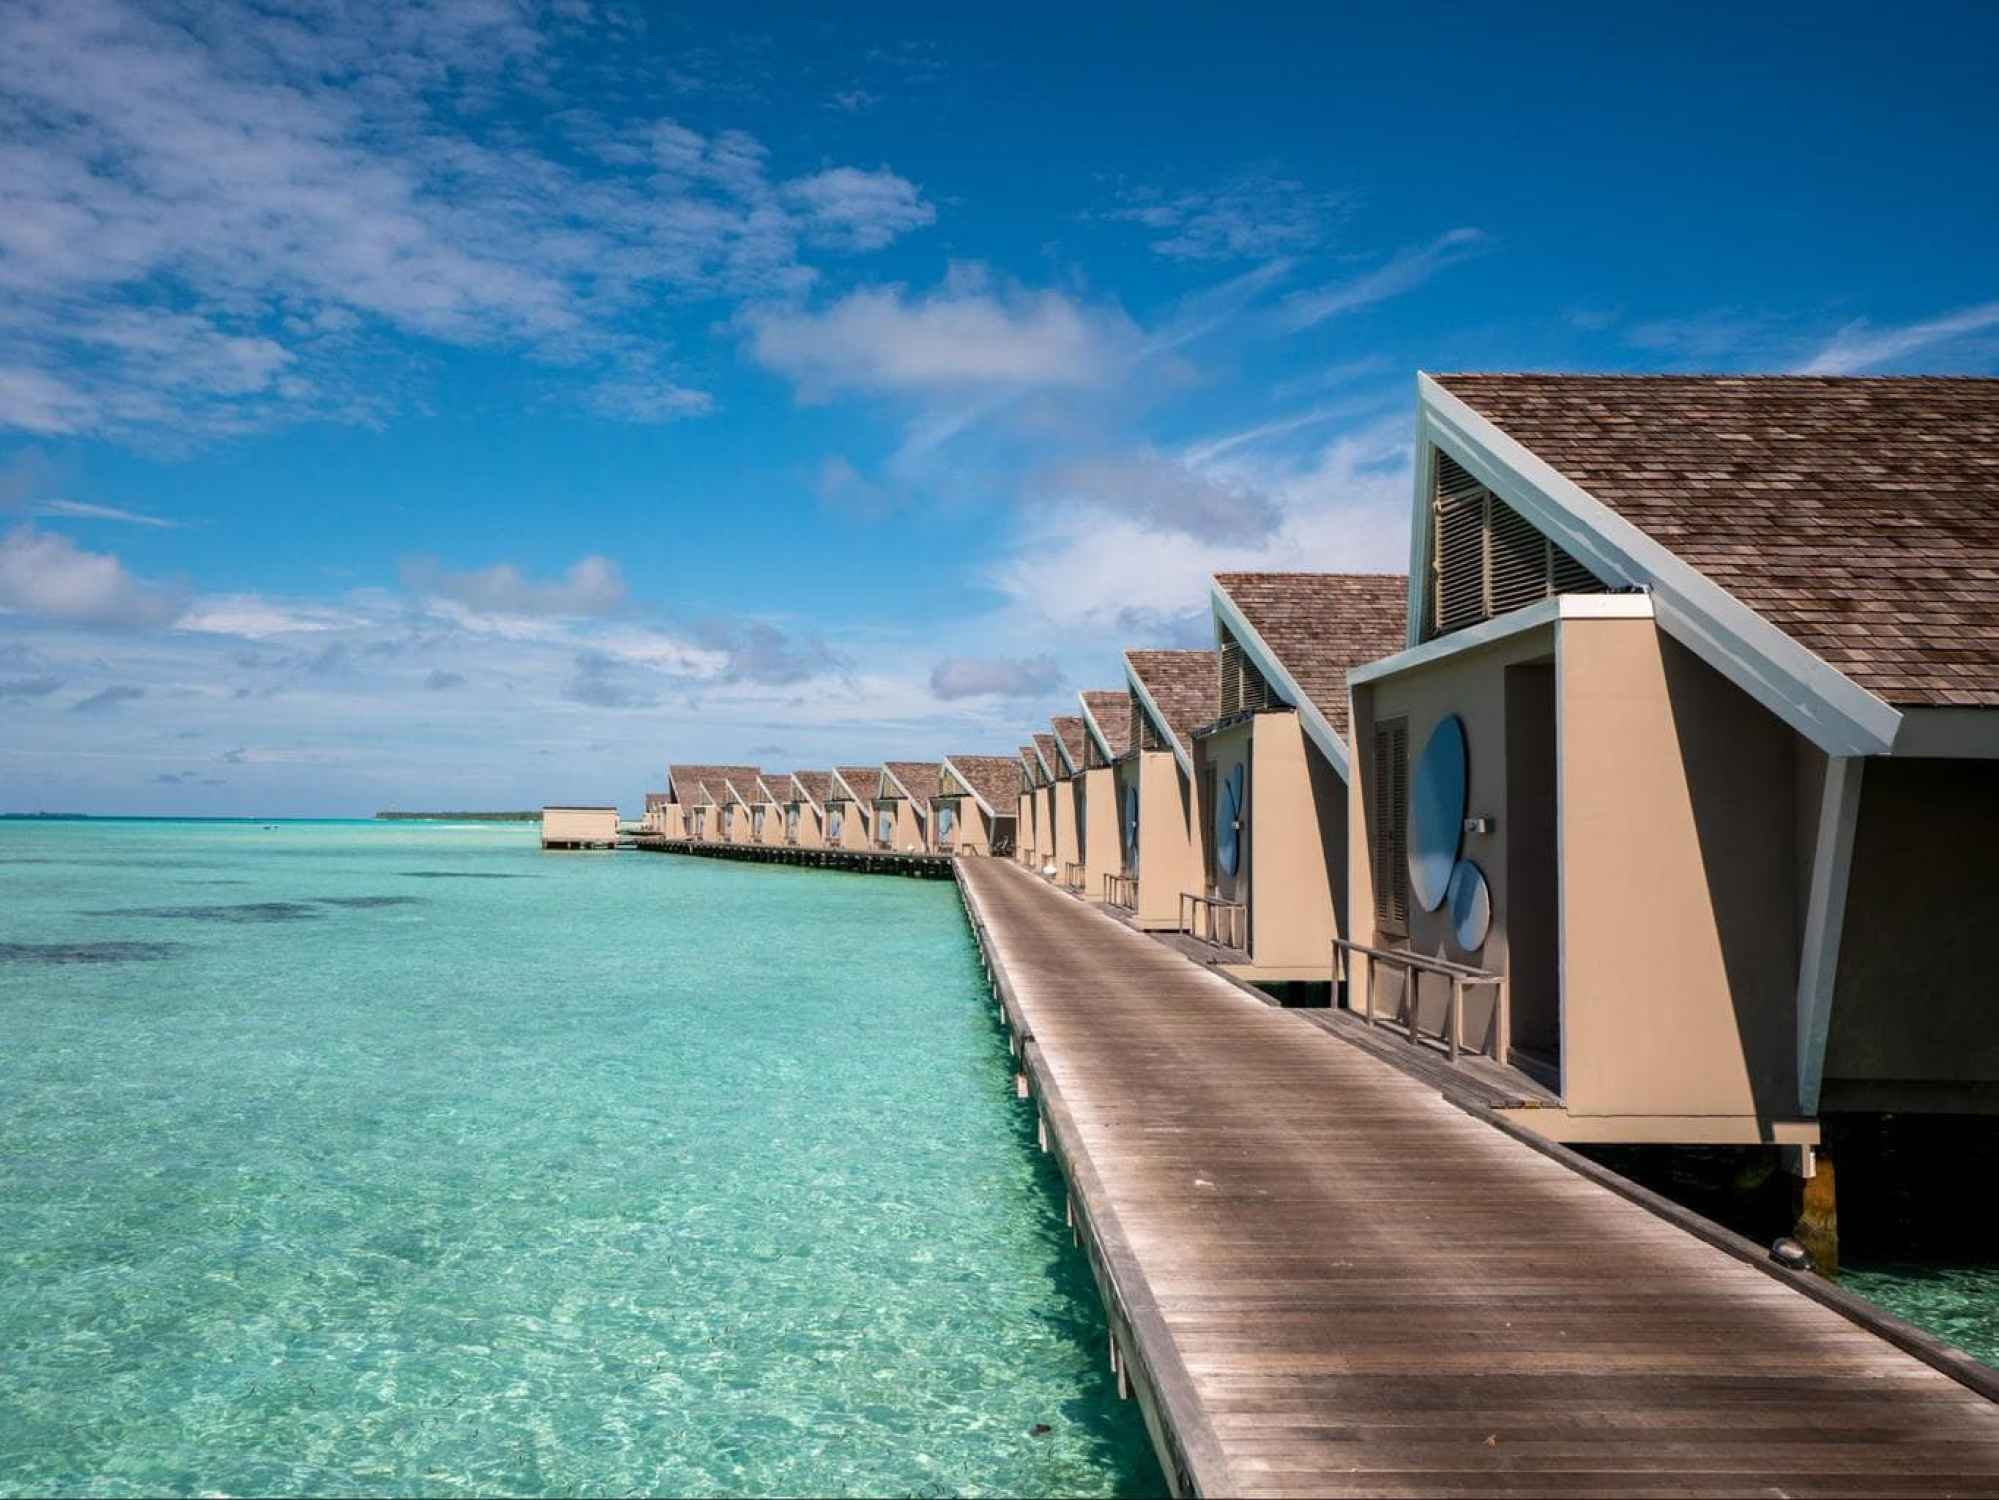 The back of the romantic pool water villas at LUX*